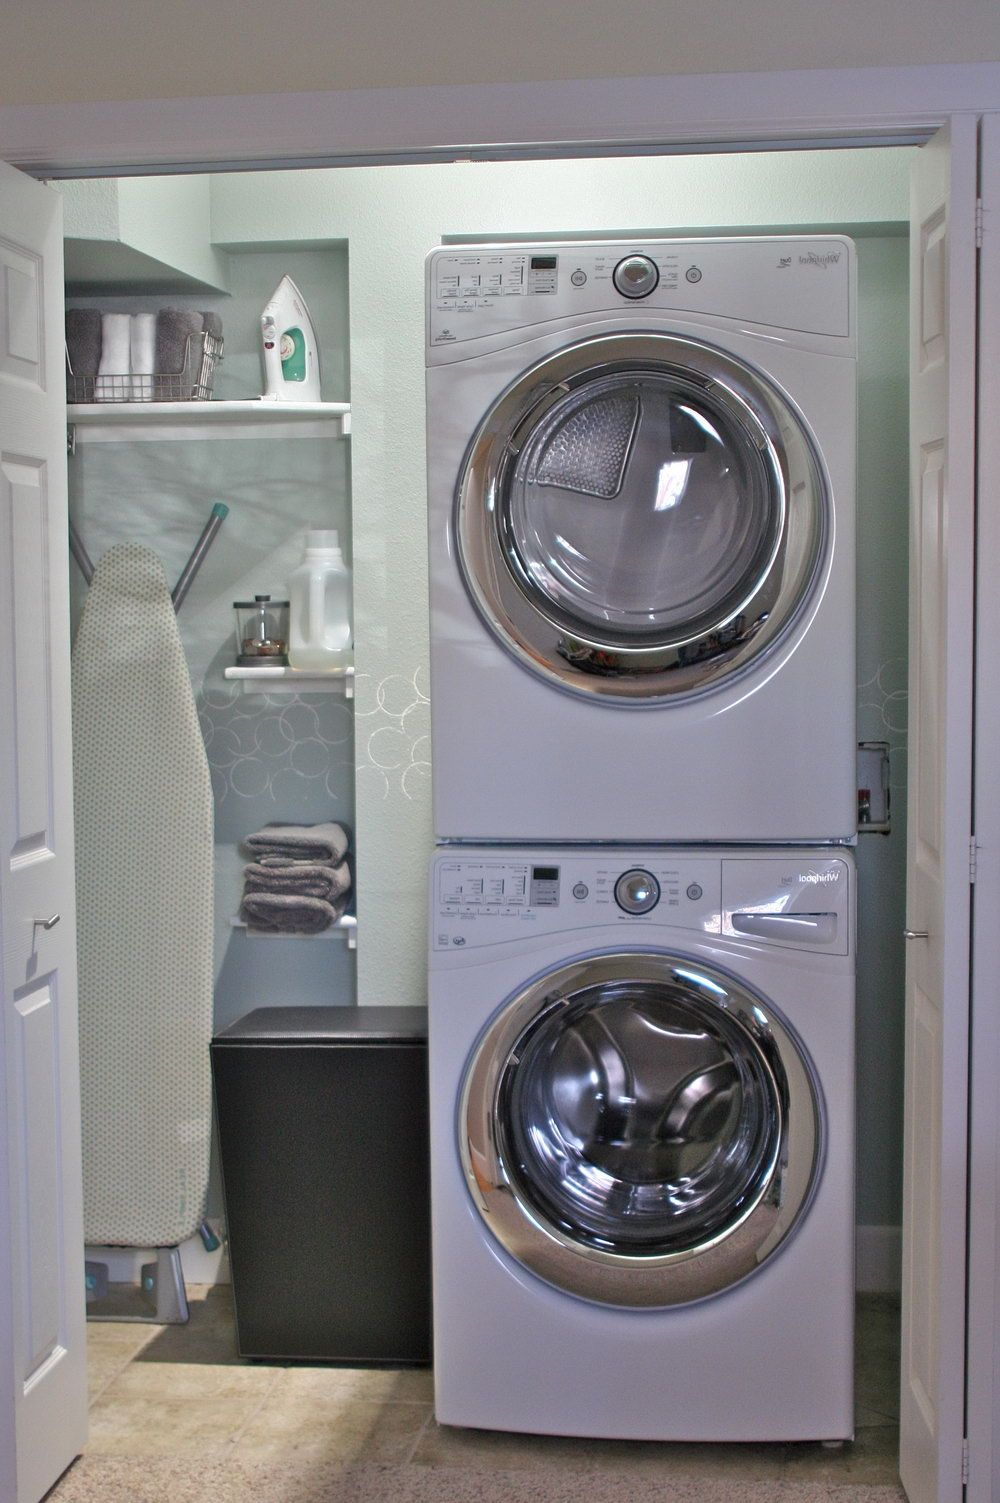 Effective Stackable Washer And Dryer Laundry Room Organization Ideas Excellent Small Closet Design Featuring Machines Space